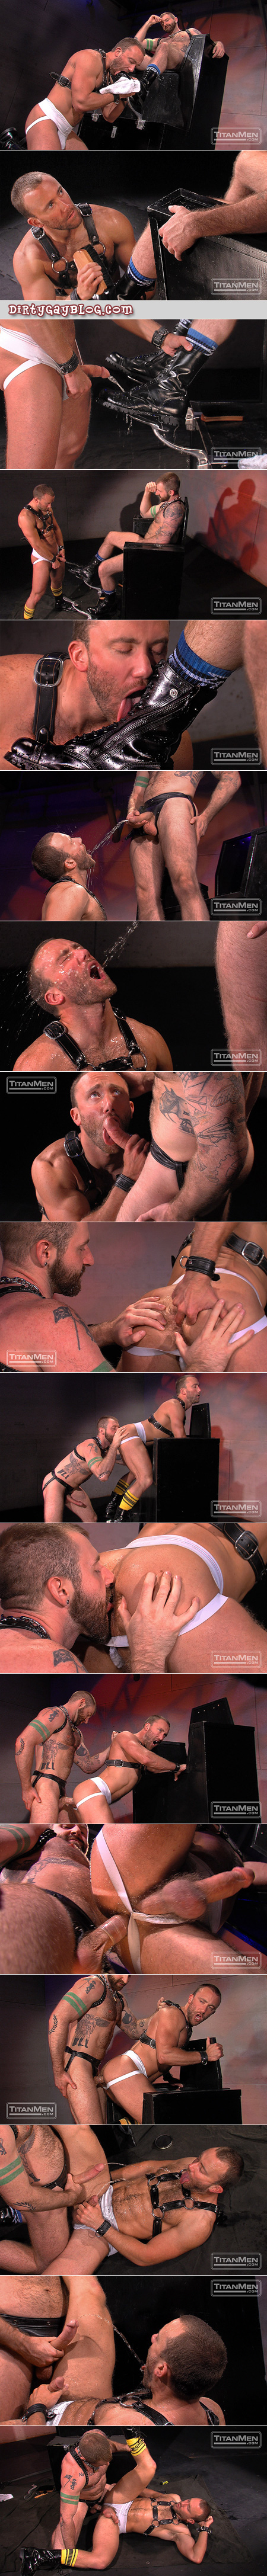 Leather boot black swaps piss with his bearded, heavily tattooed man he serves.